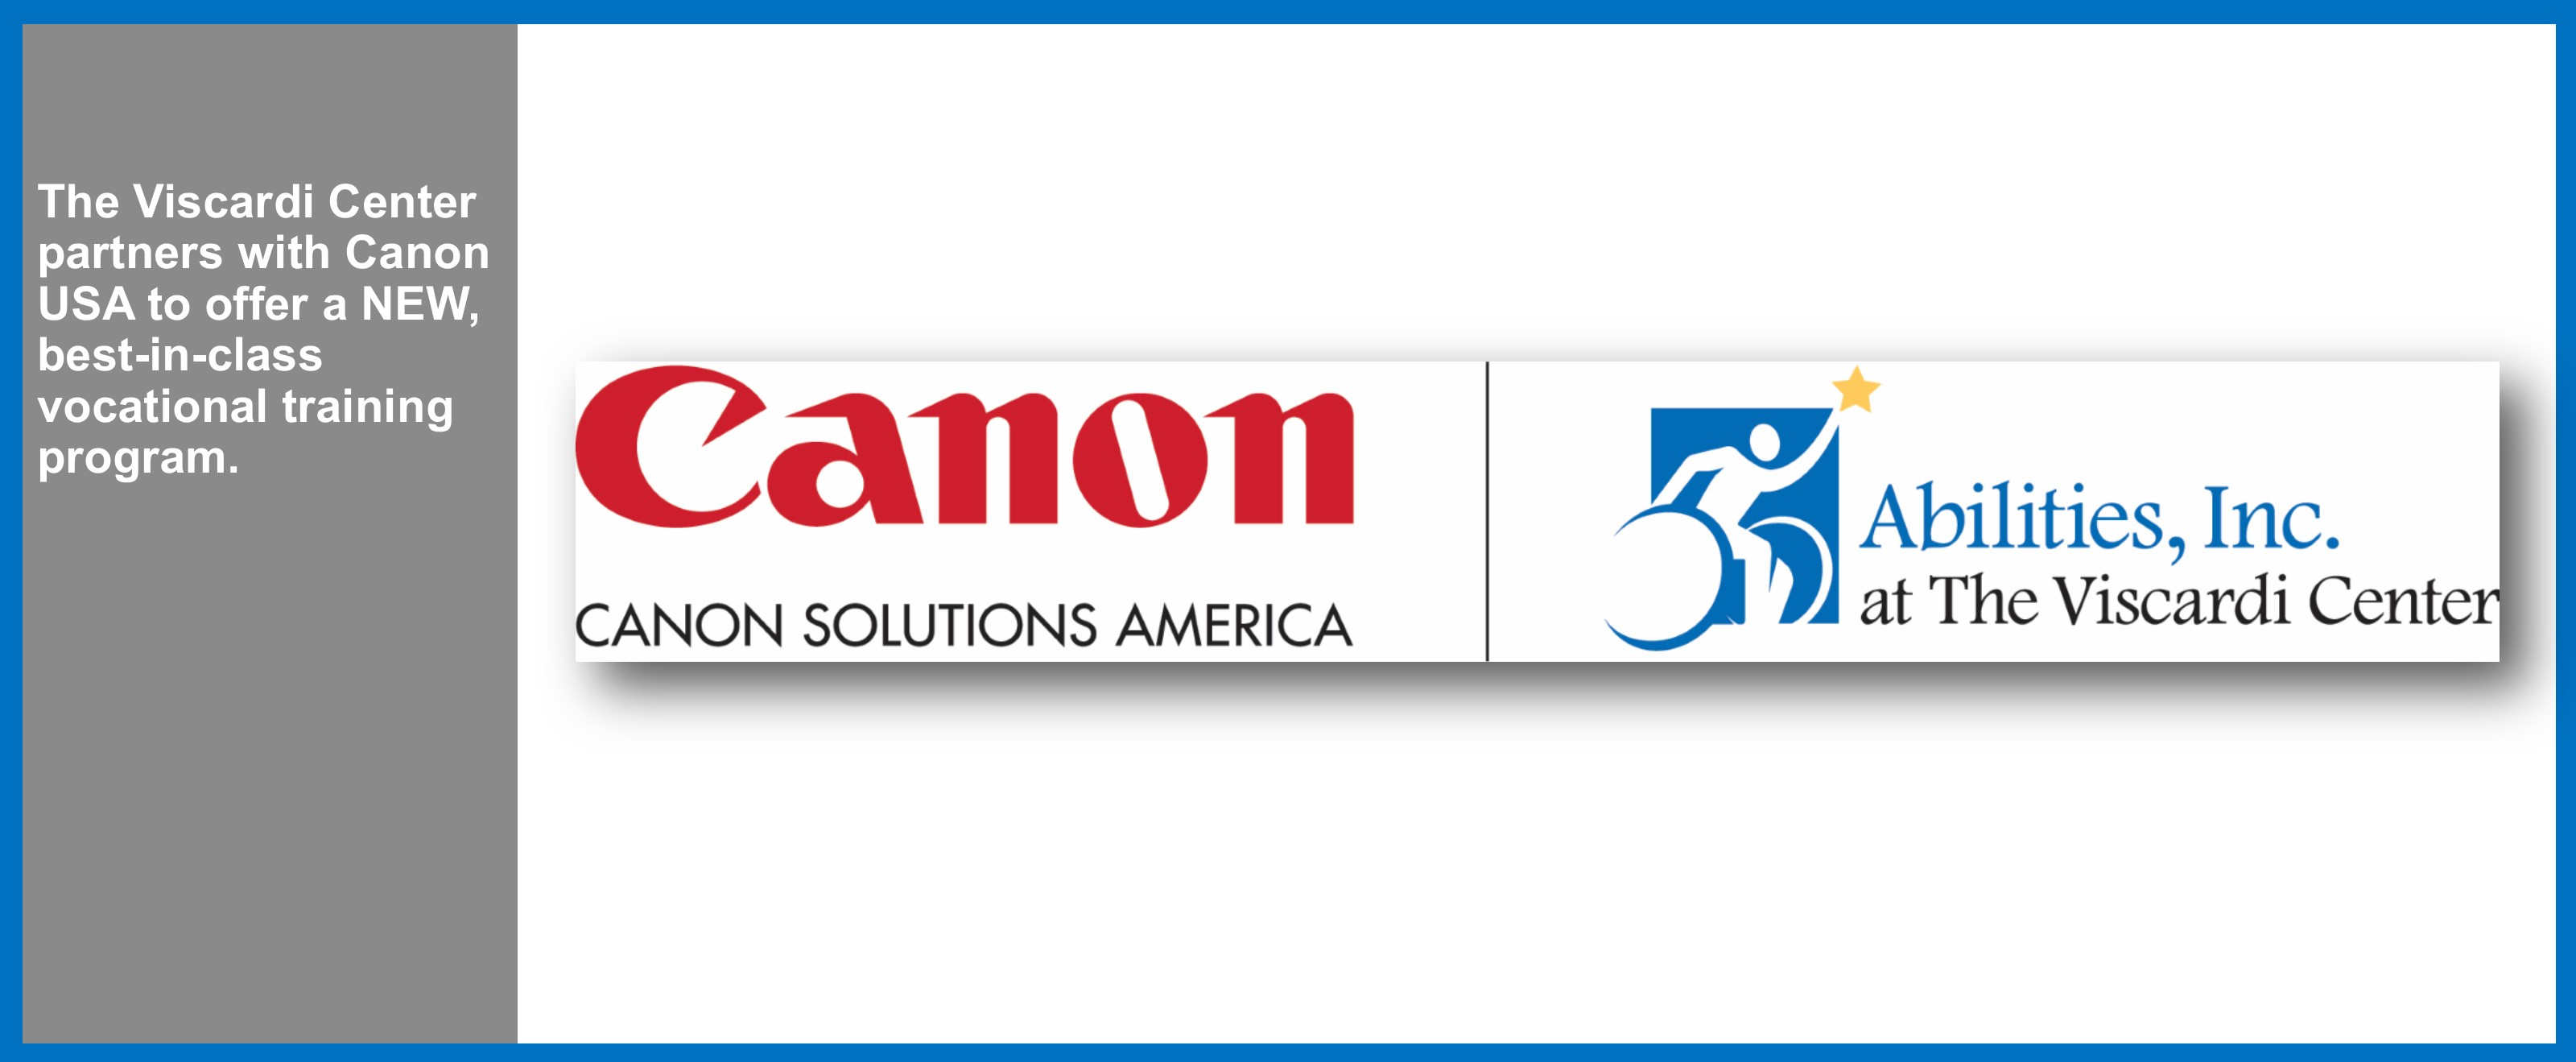 The Viscardi Center partners with Canon USA to offer a NEW, best-in-class vocational training program.